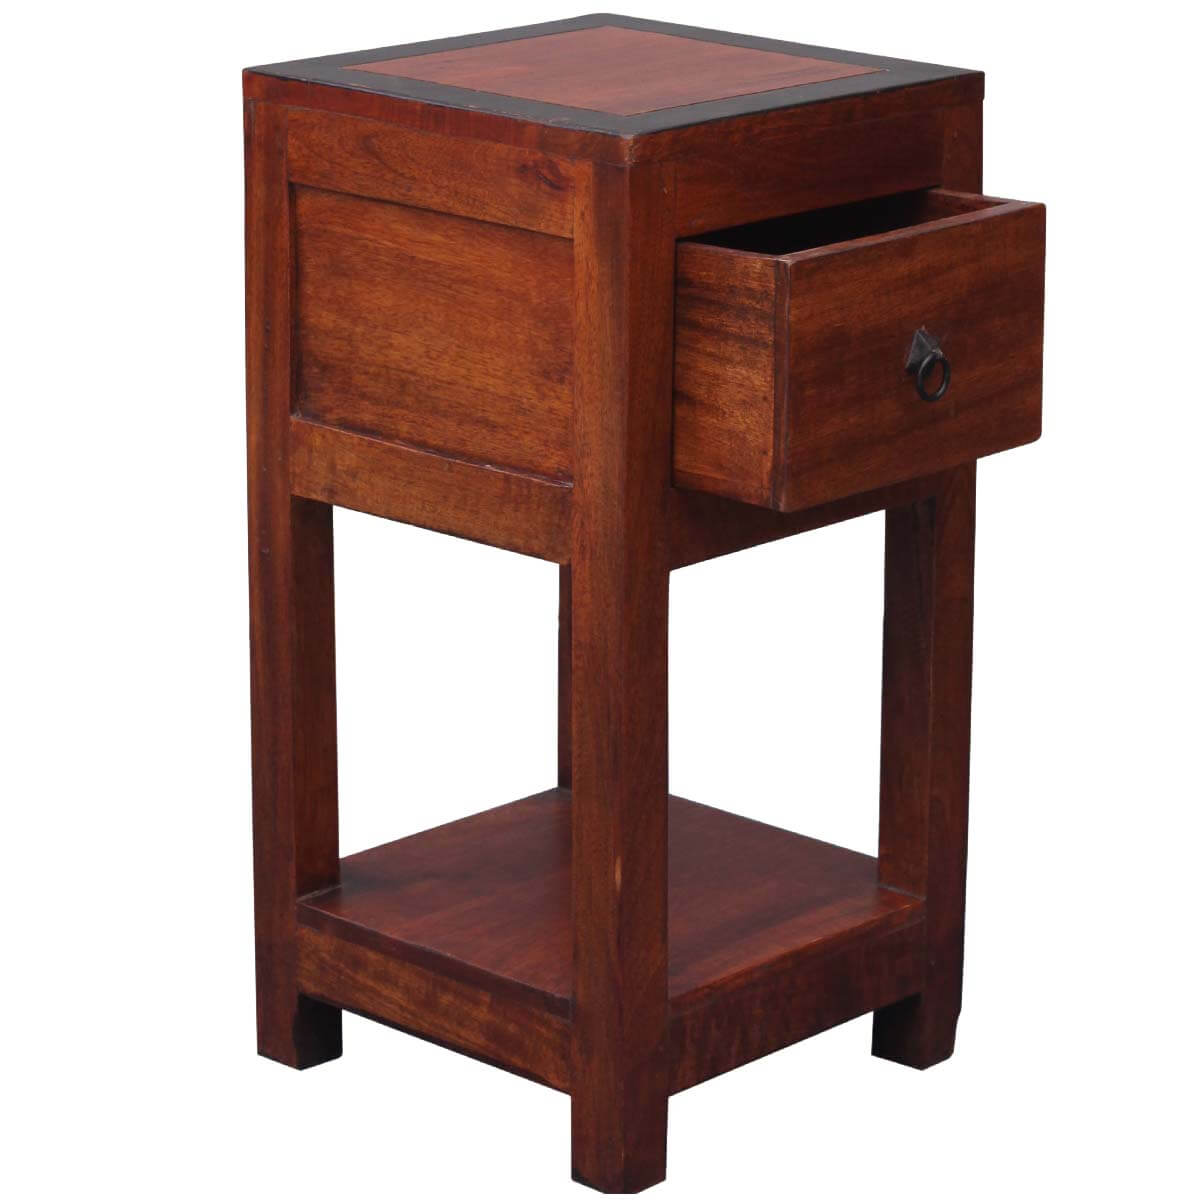 Square 2 Tier Solid Wood Nightstand End Table W Drawer